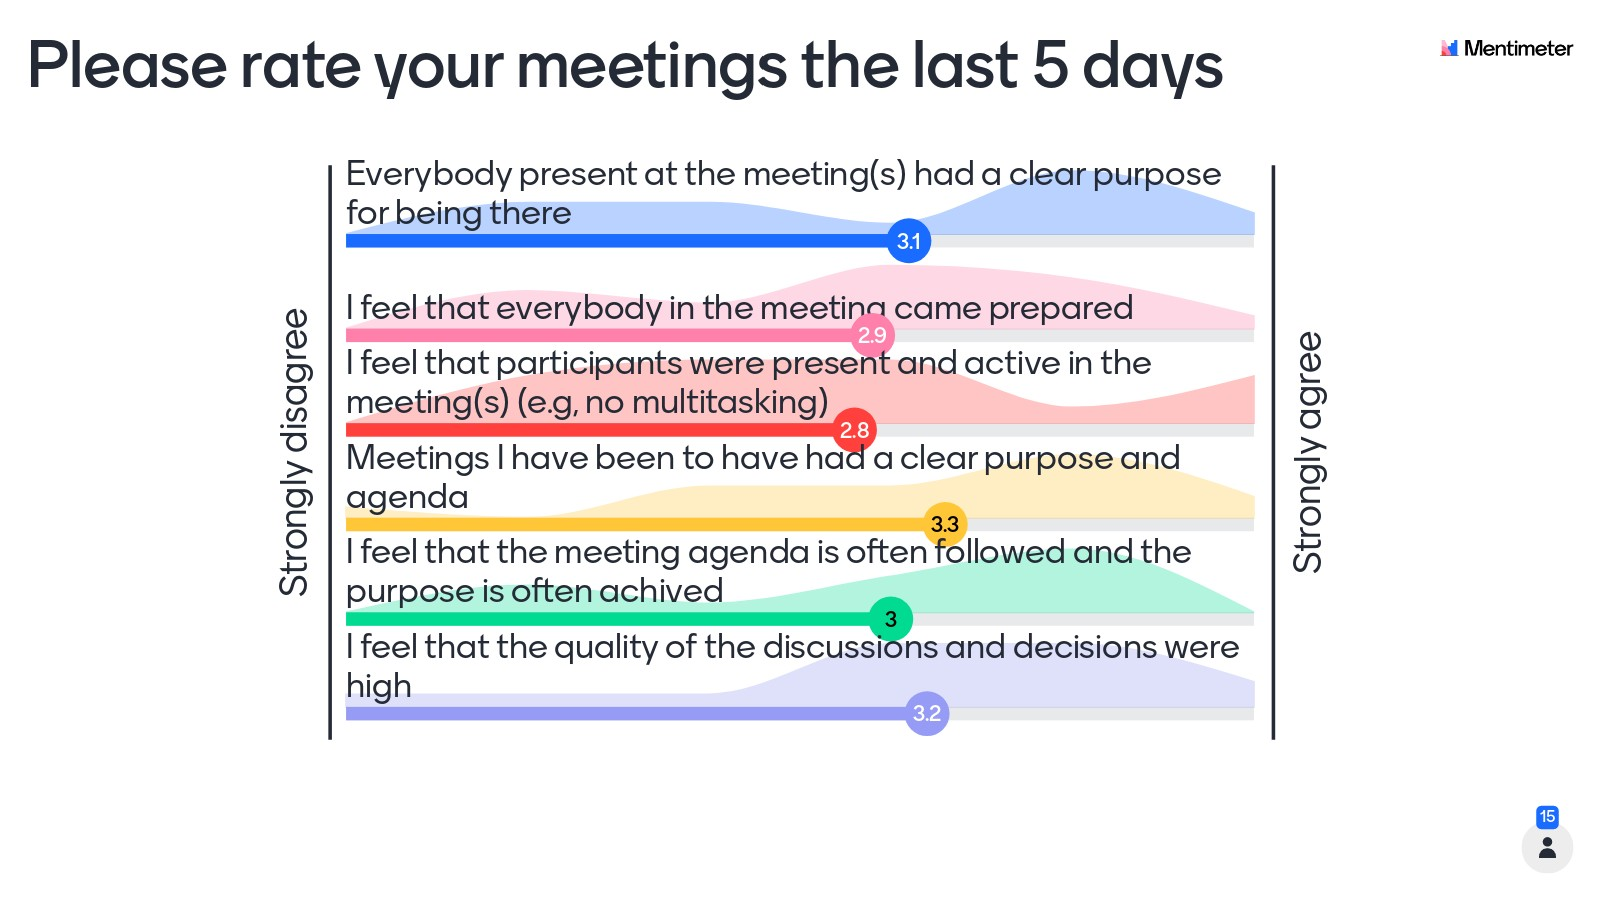 Meeting efficiency reflection